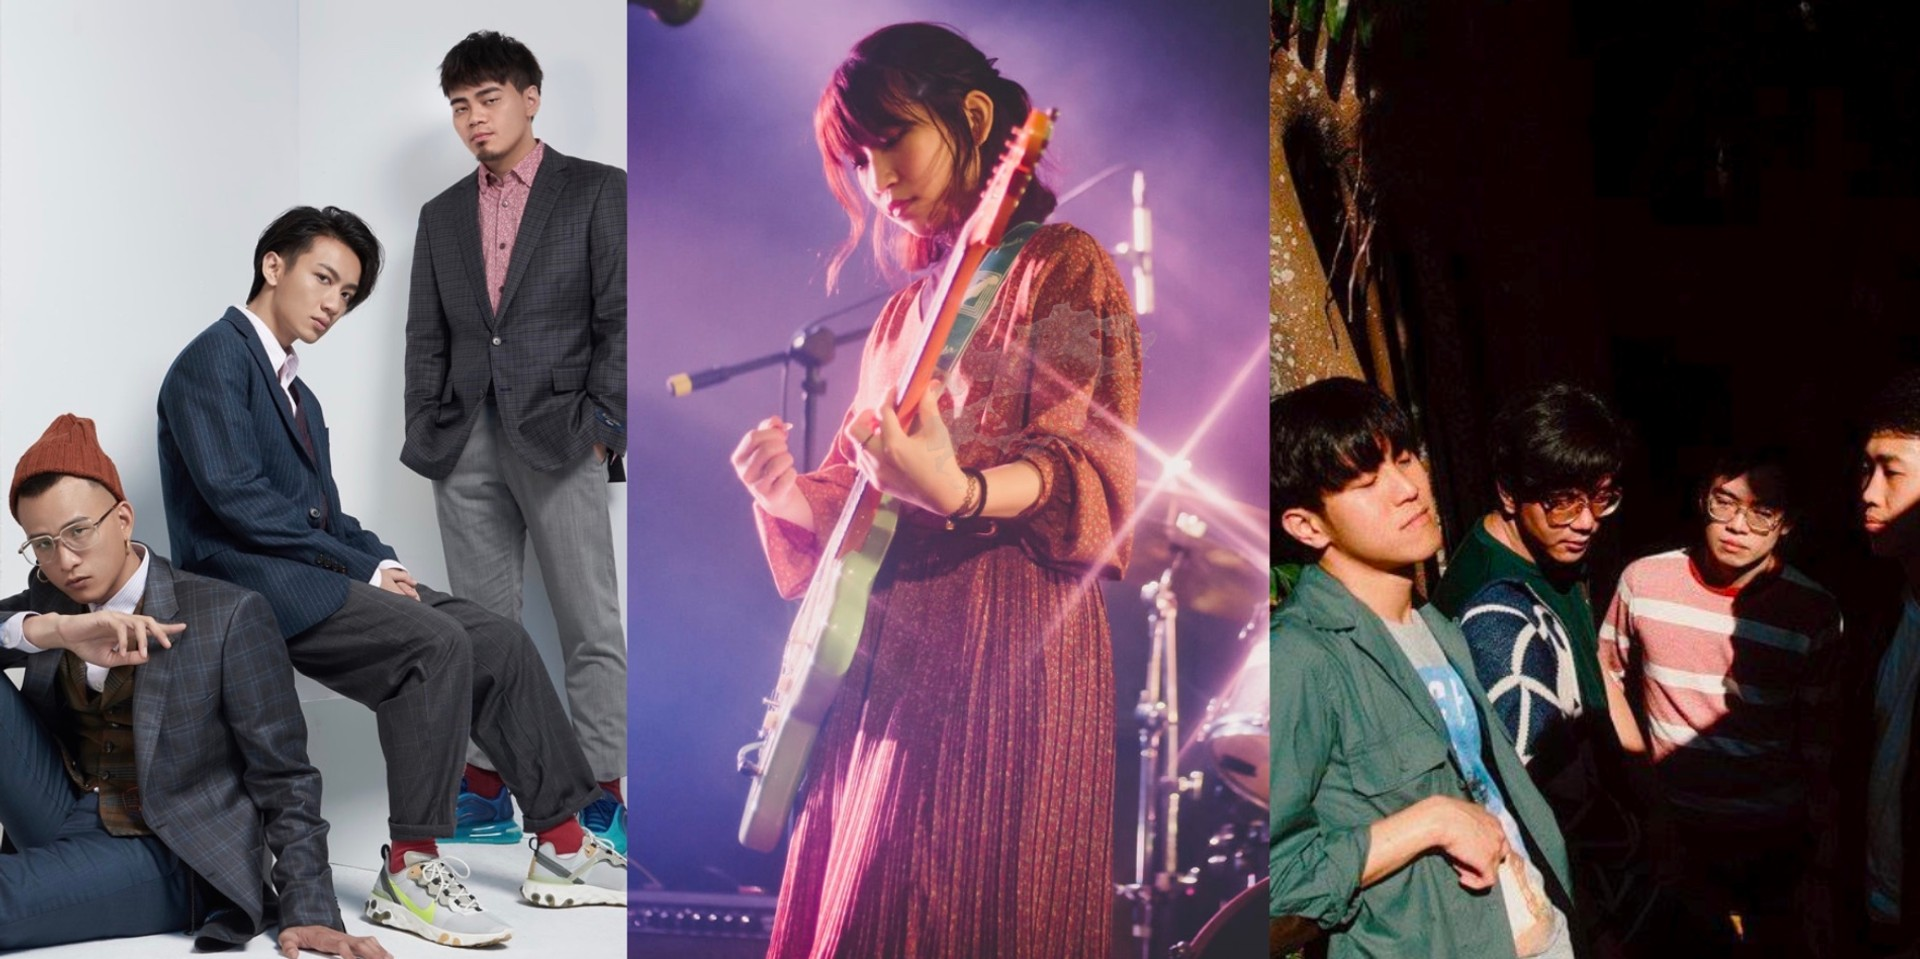 Here's how to get on the LUCfest 2020 stage in Taiwan